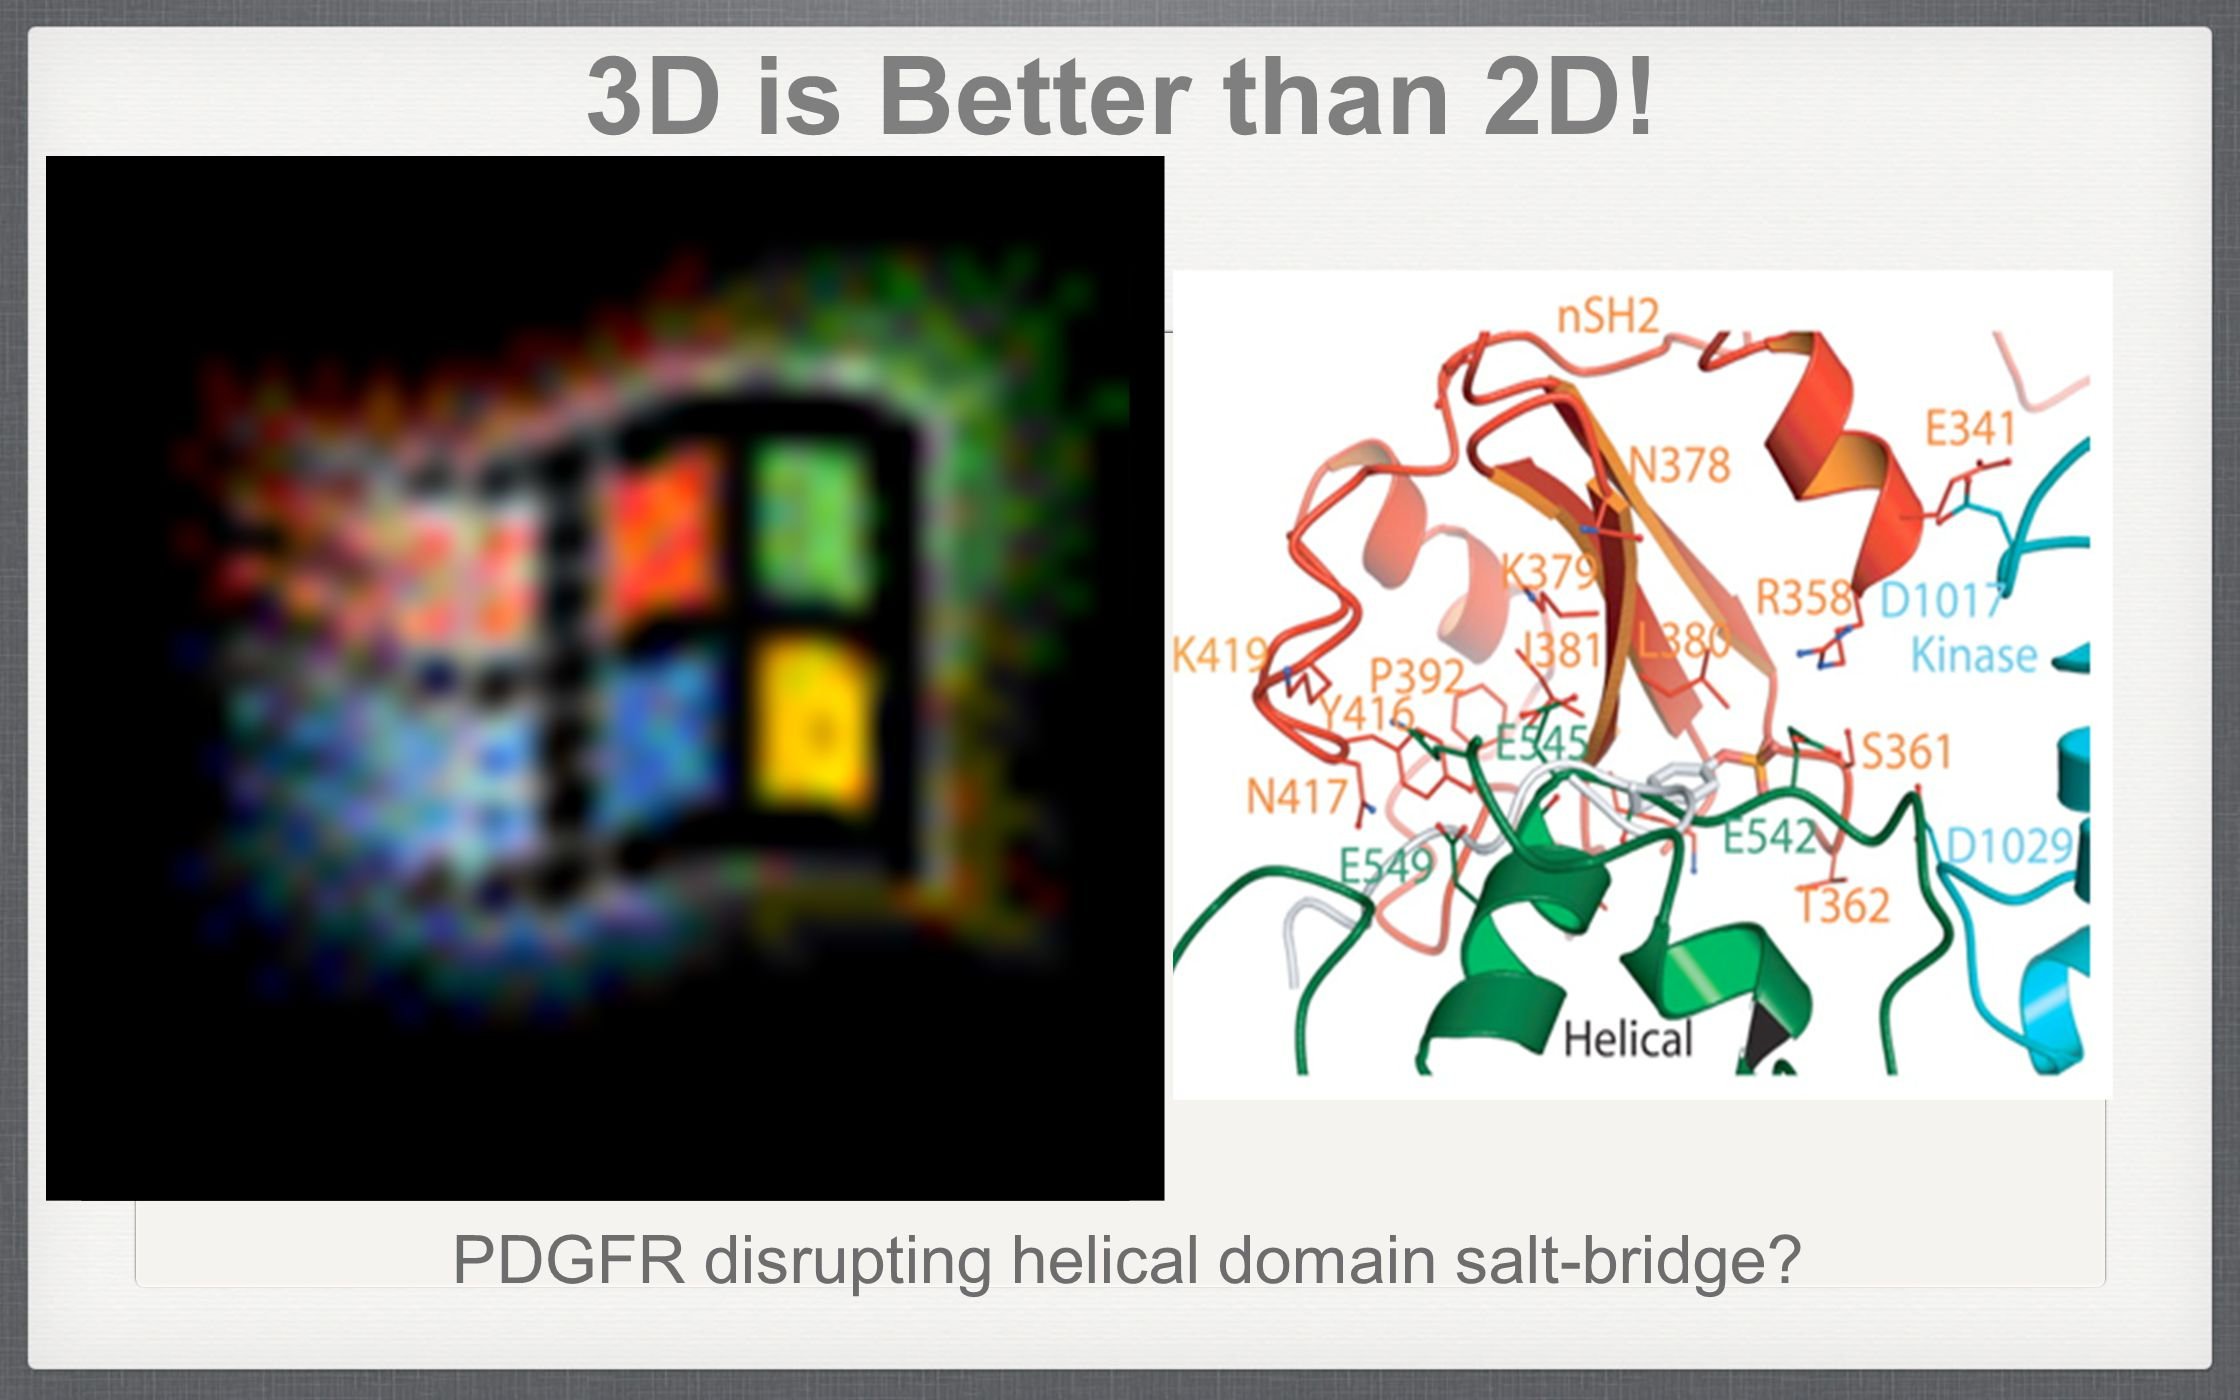 3D is Better than 2D! PDGFR disrupting helical domain salt-bridge?